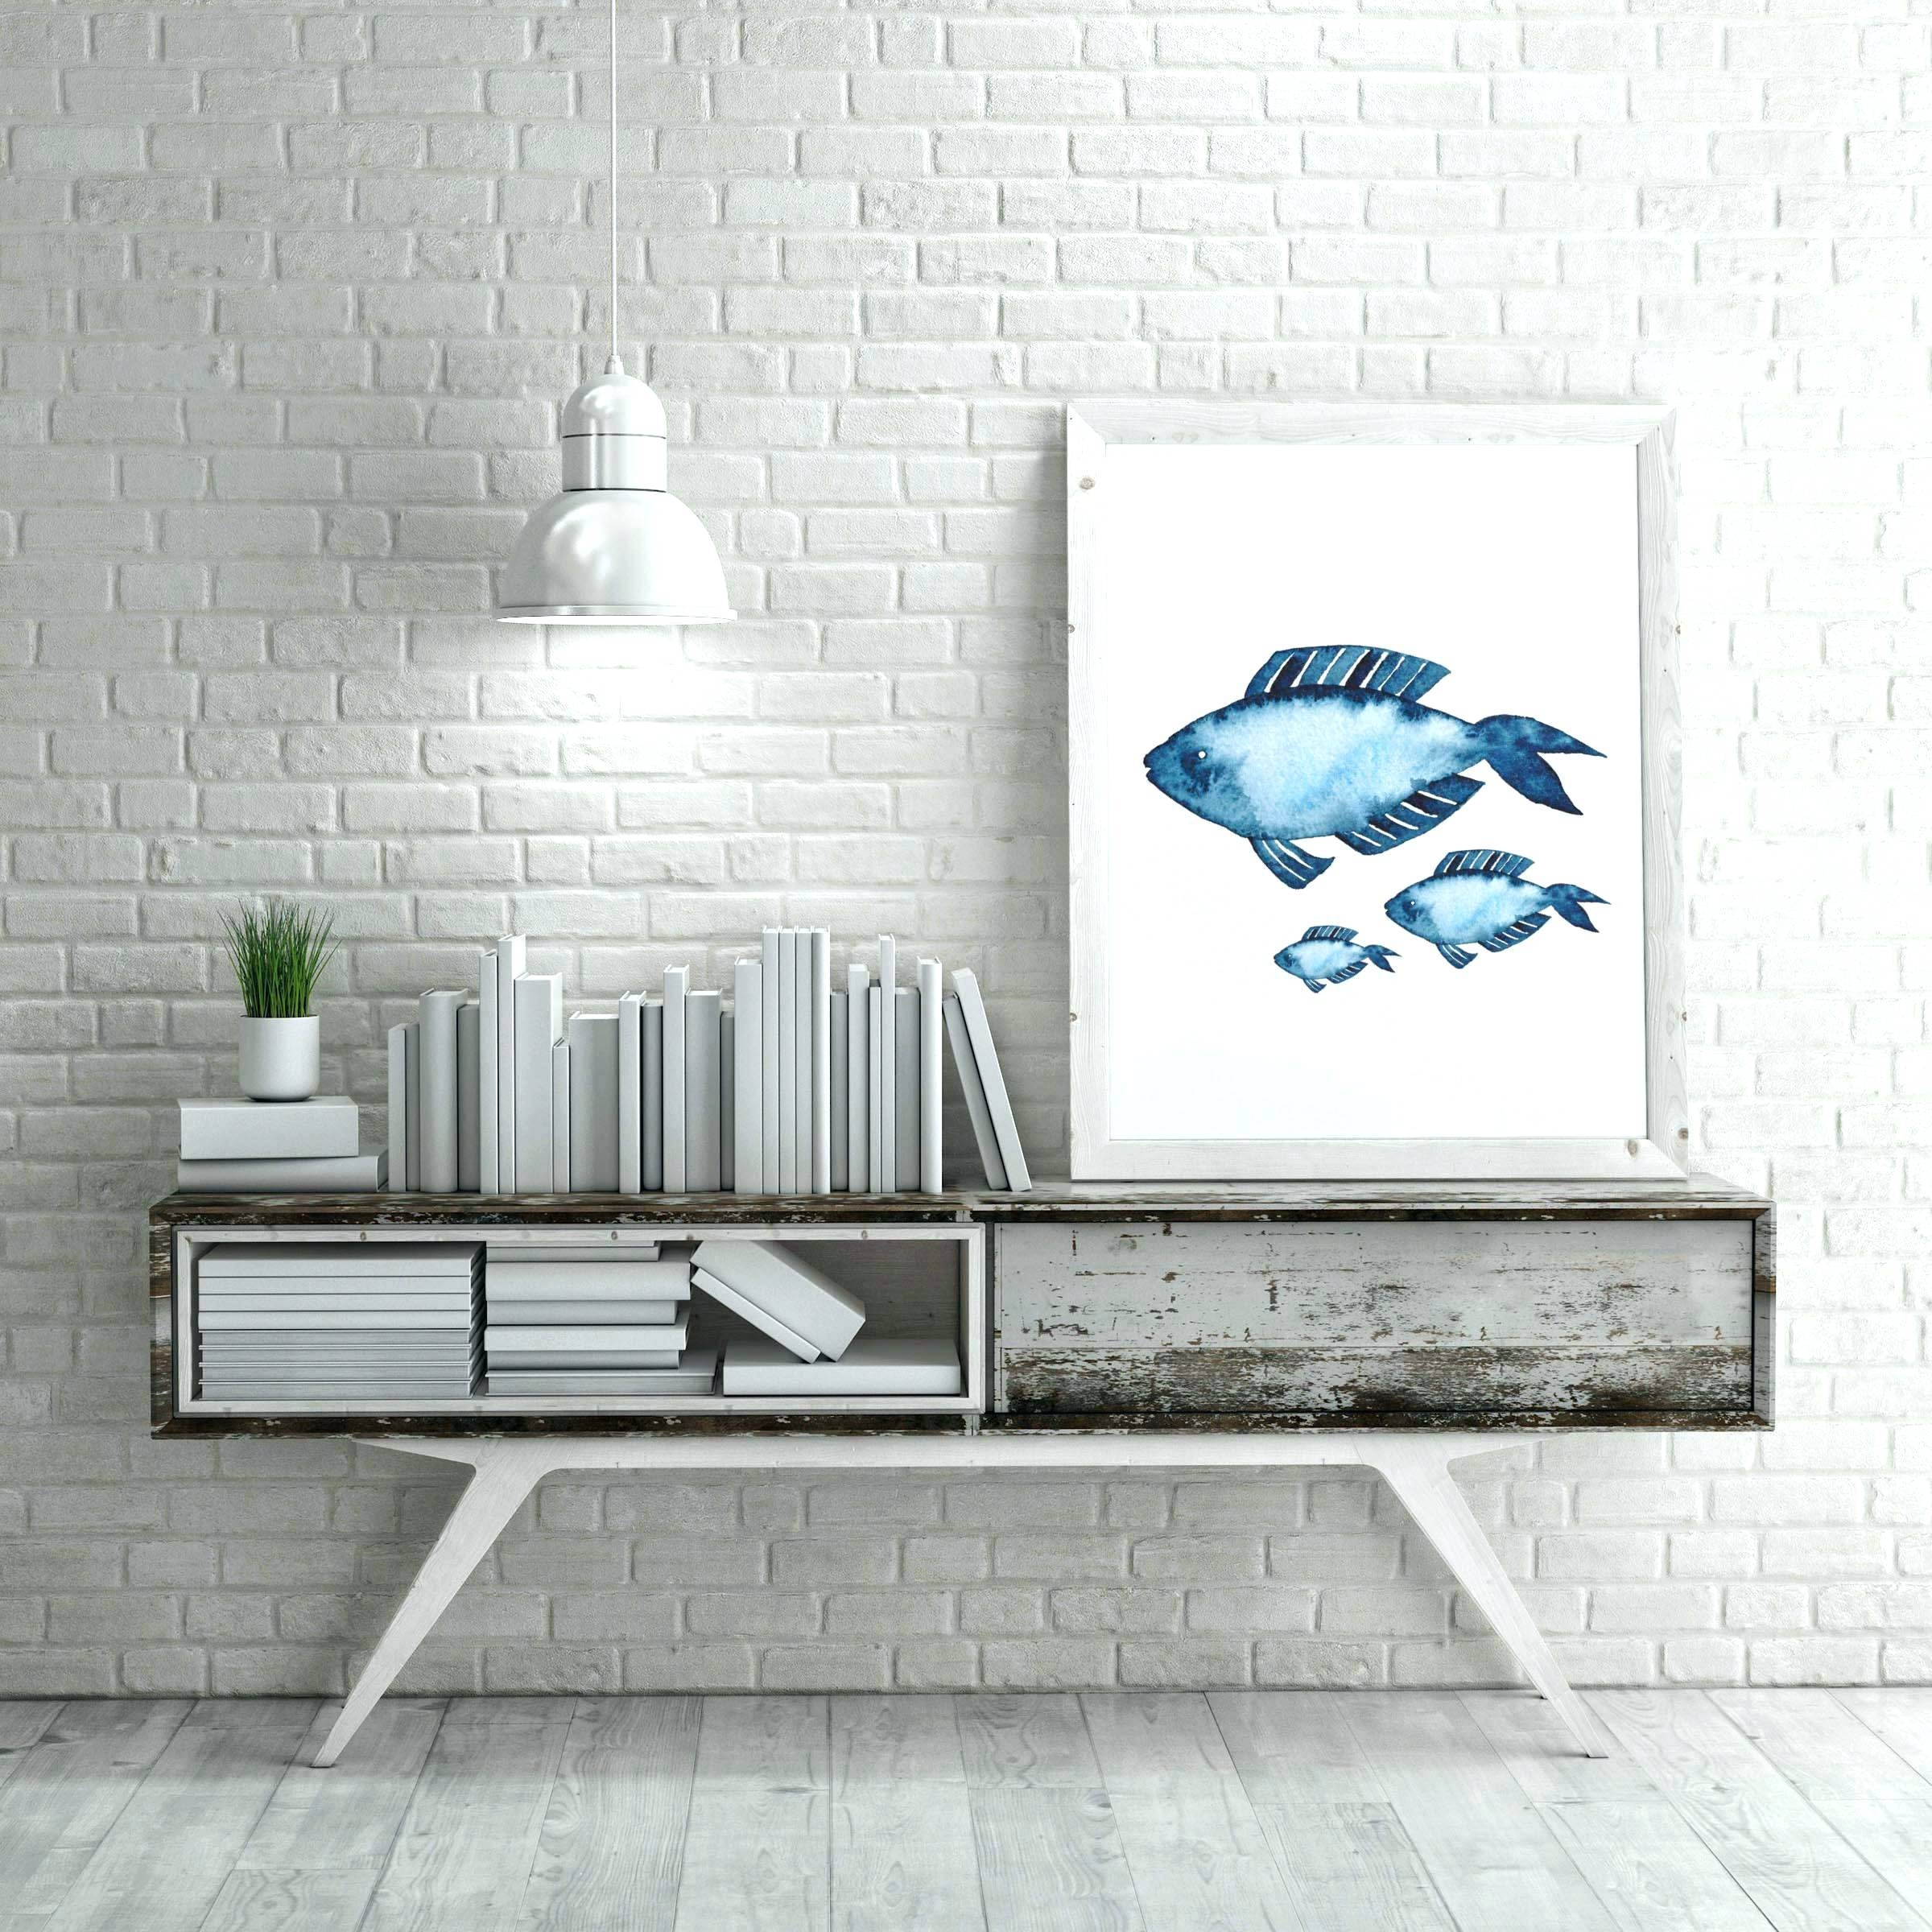 Wall Arts ~ Coastal Wall Canvas Bird Prints Beach Photography For Current Crate Barrel Coastal Wall Art (View 20 of 20)